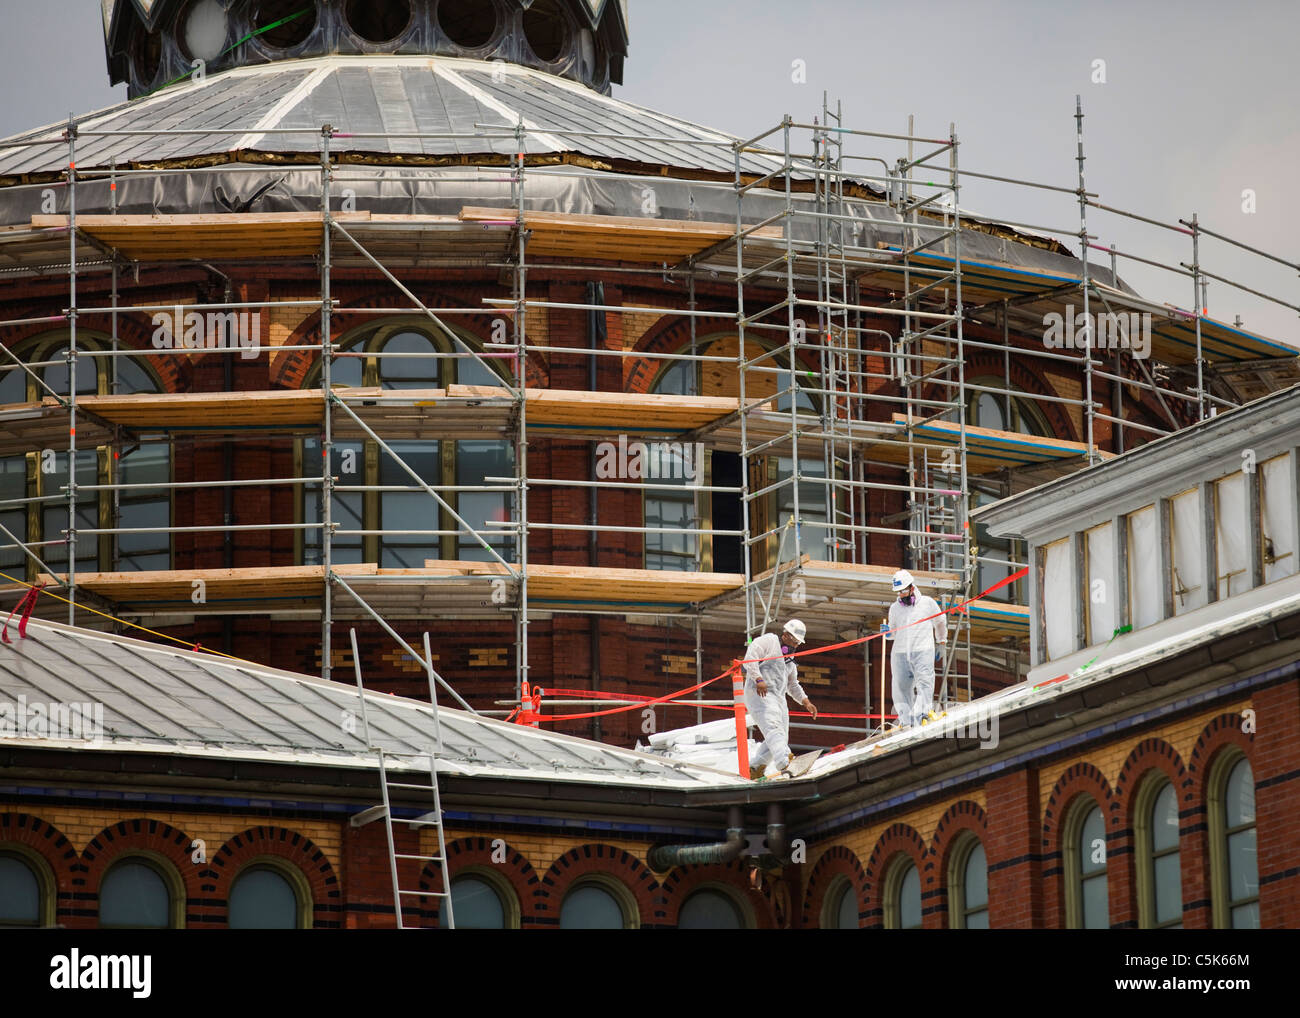 Building restorers working roof of historic Smithsonian's Arts and Industries Museum - Stock Image